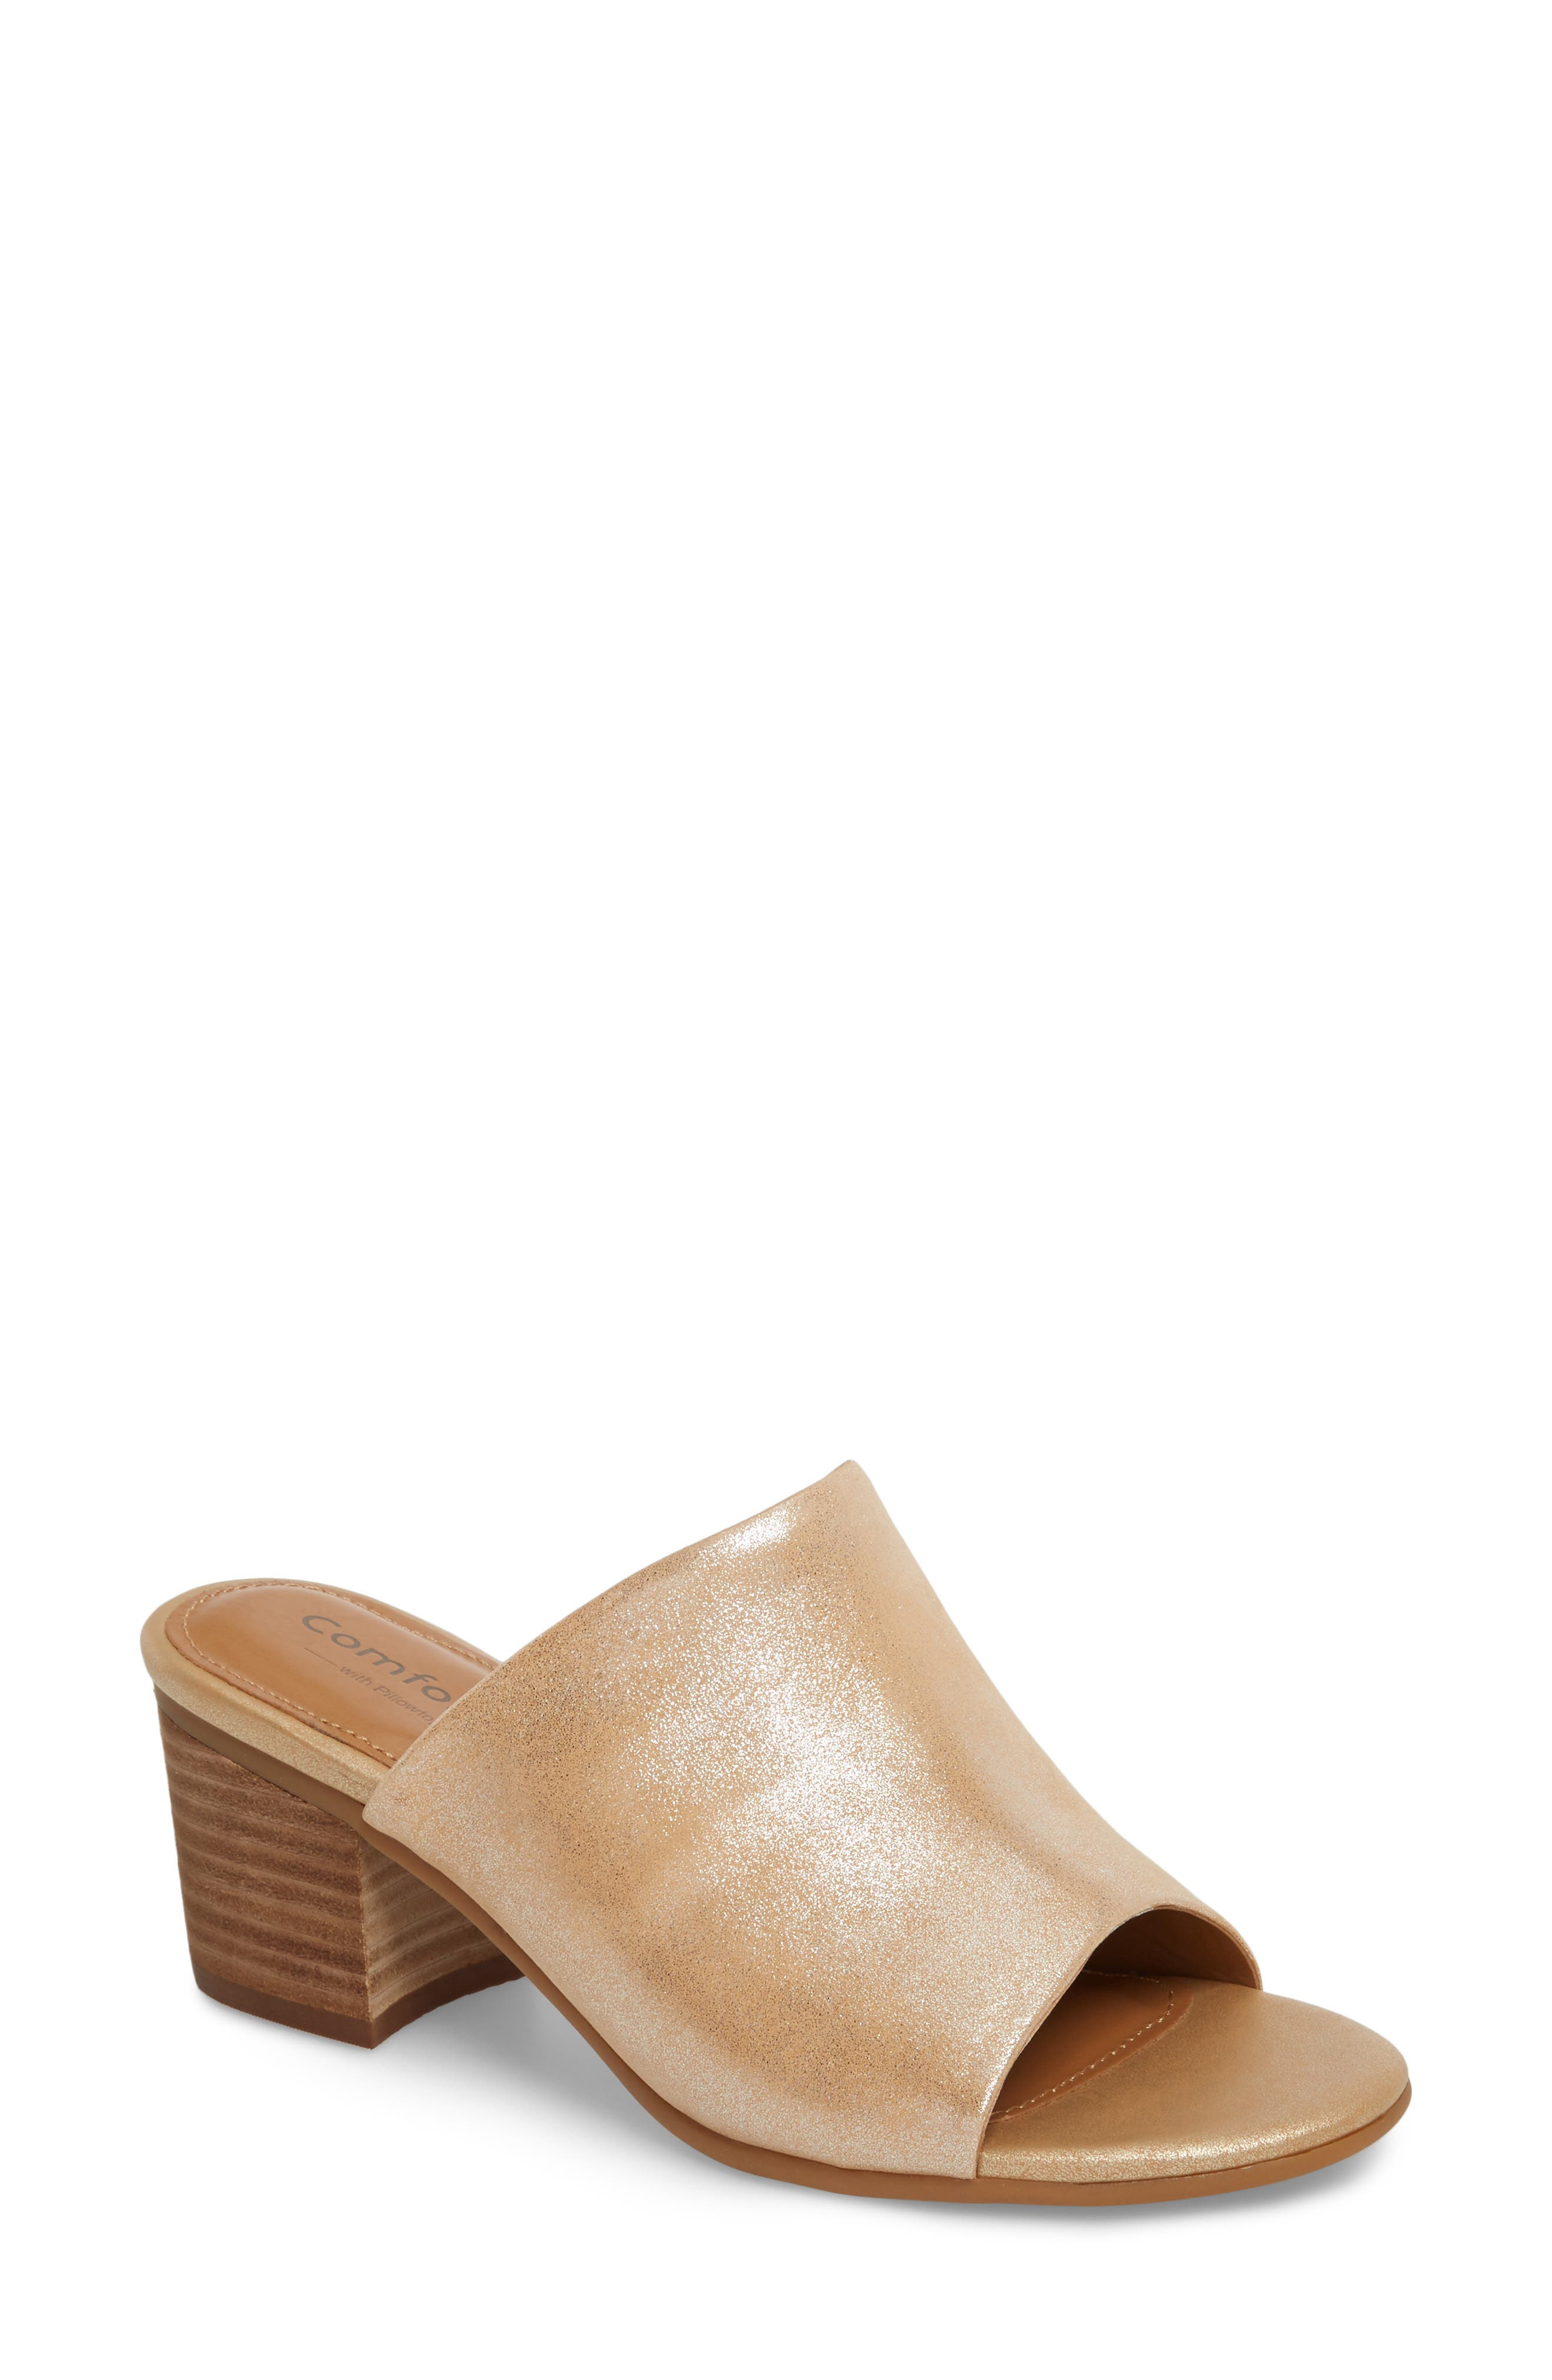 Anabella Sandal,                         Main,                         color, Natural Leather